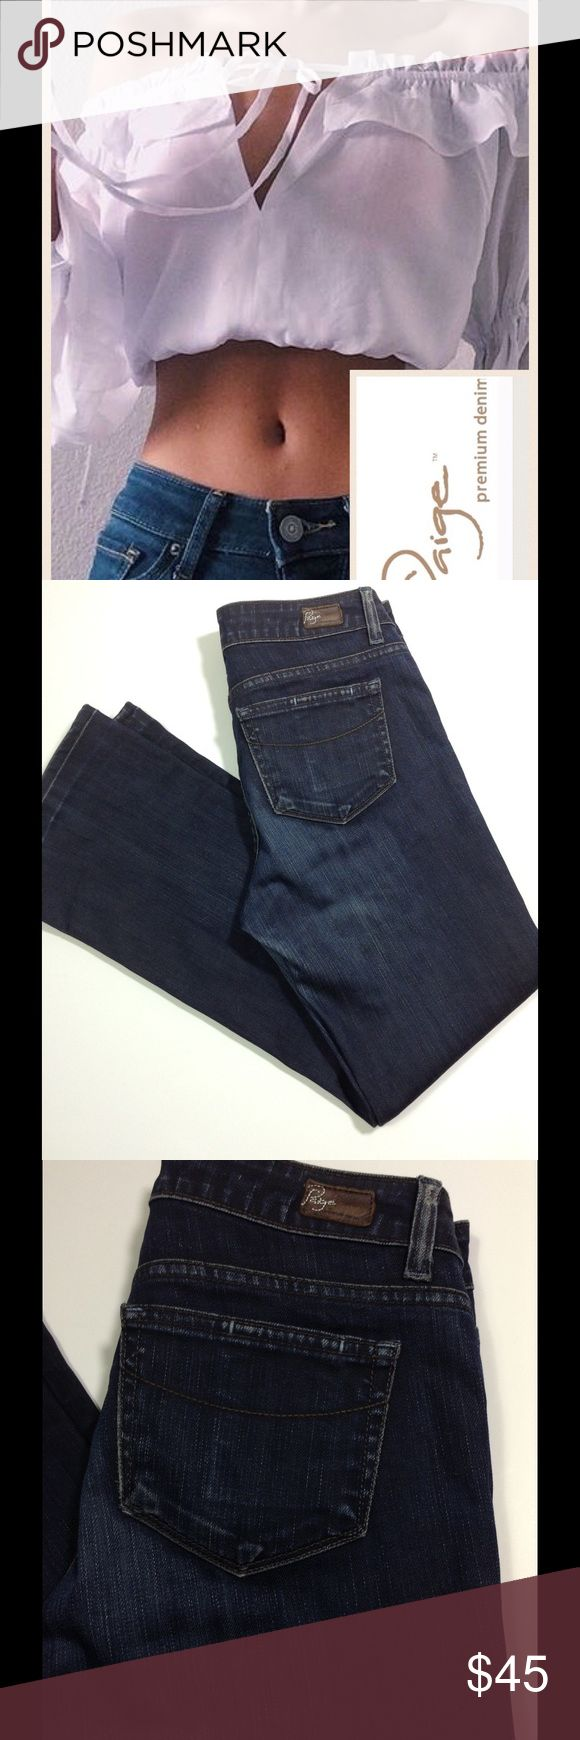 "🆕 Paige Jeans Paige Melbourne Bootcut Jeans, Dark Washed, Distressed, New (Paper Tag Still on Inside), Price Tag Missing, Waist 32"" (Flat ) Rise 8 1/2"", Length 29"", Cuff 9"" 👖👖👖👖👖👖 Paige Jeans Jeans Boot Cut"